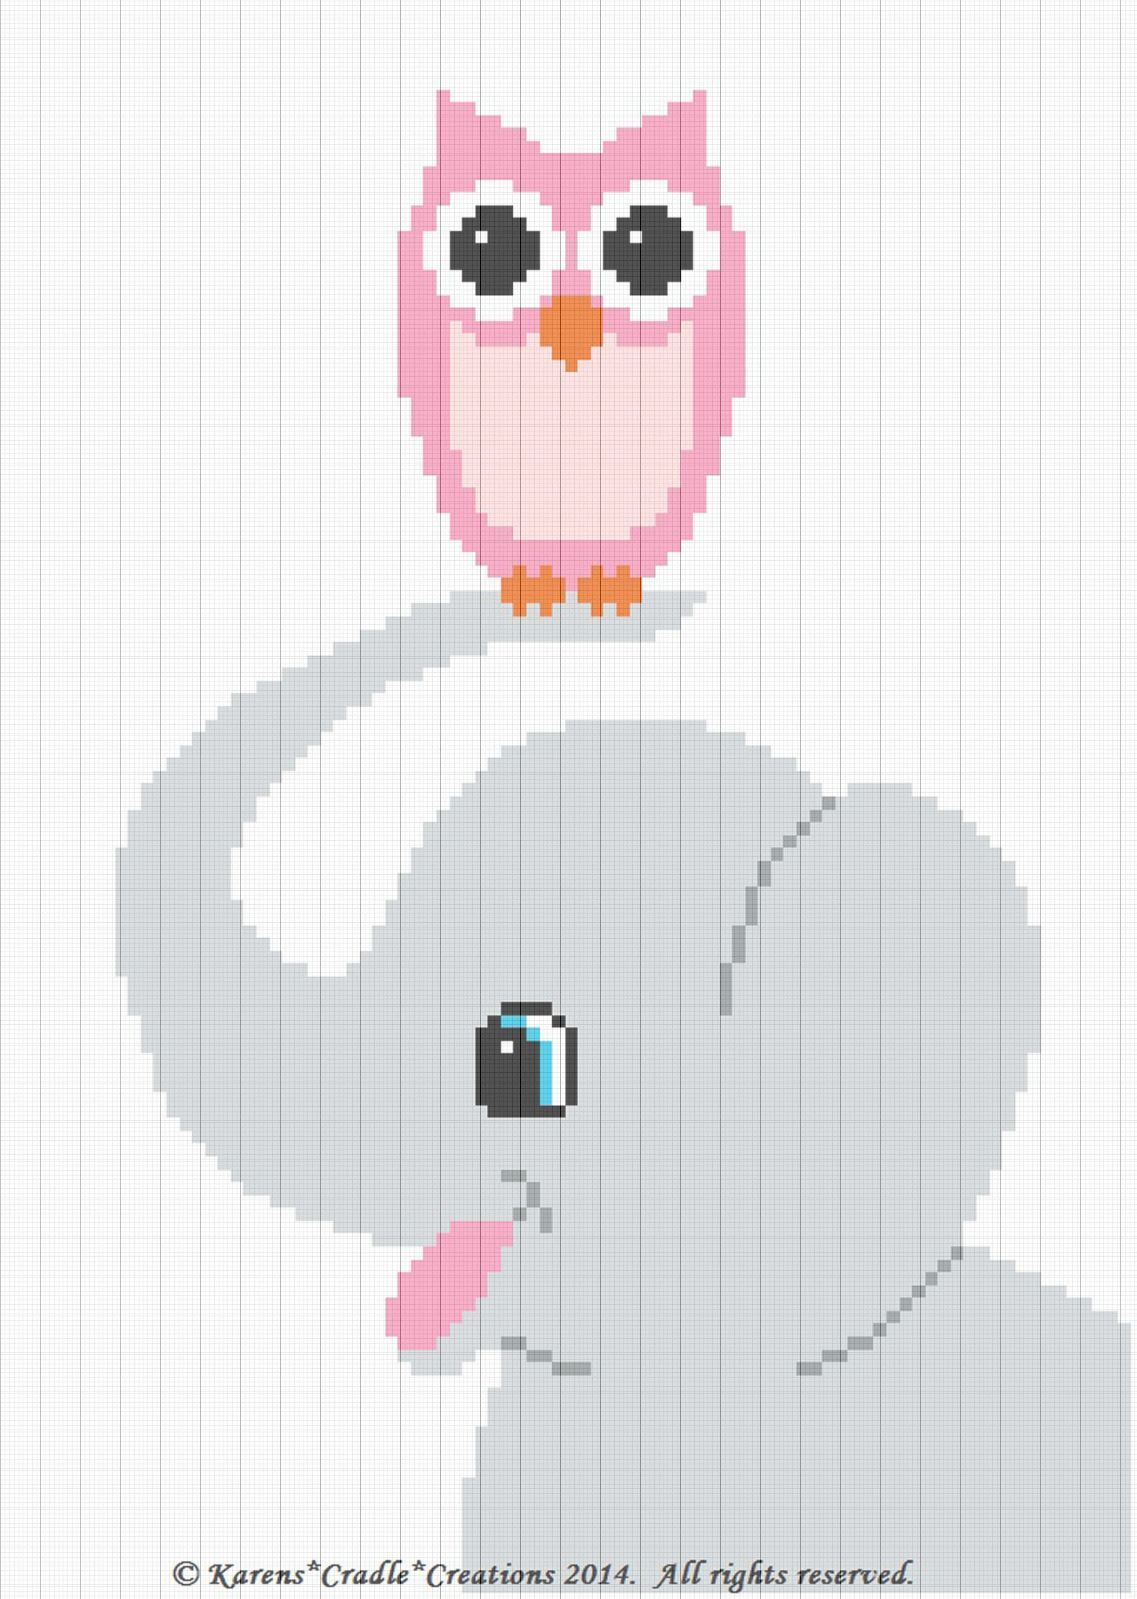 Crochet Patterns - Elephant And Owl Graph/Chart Afghan Pattern Easy ...